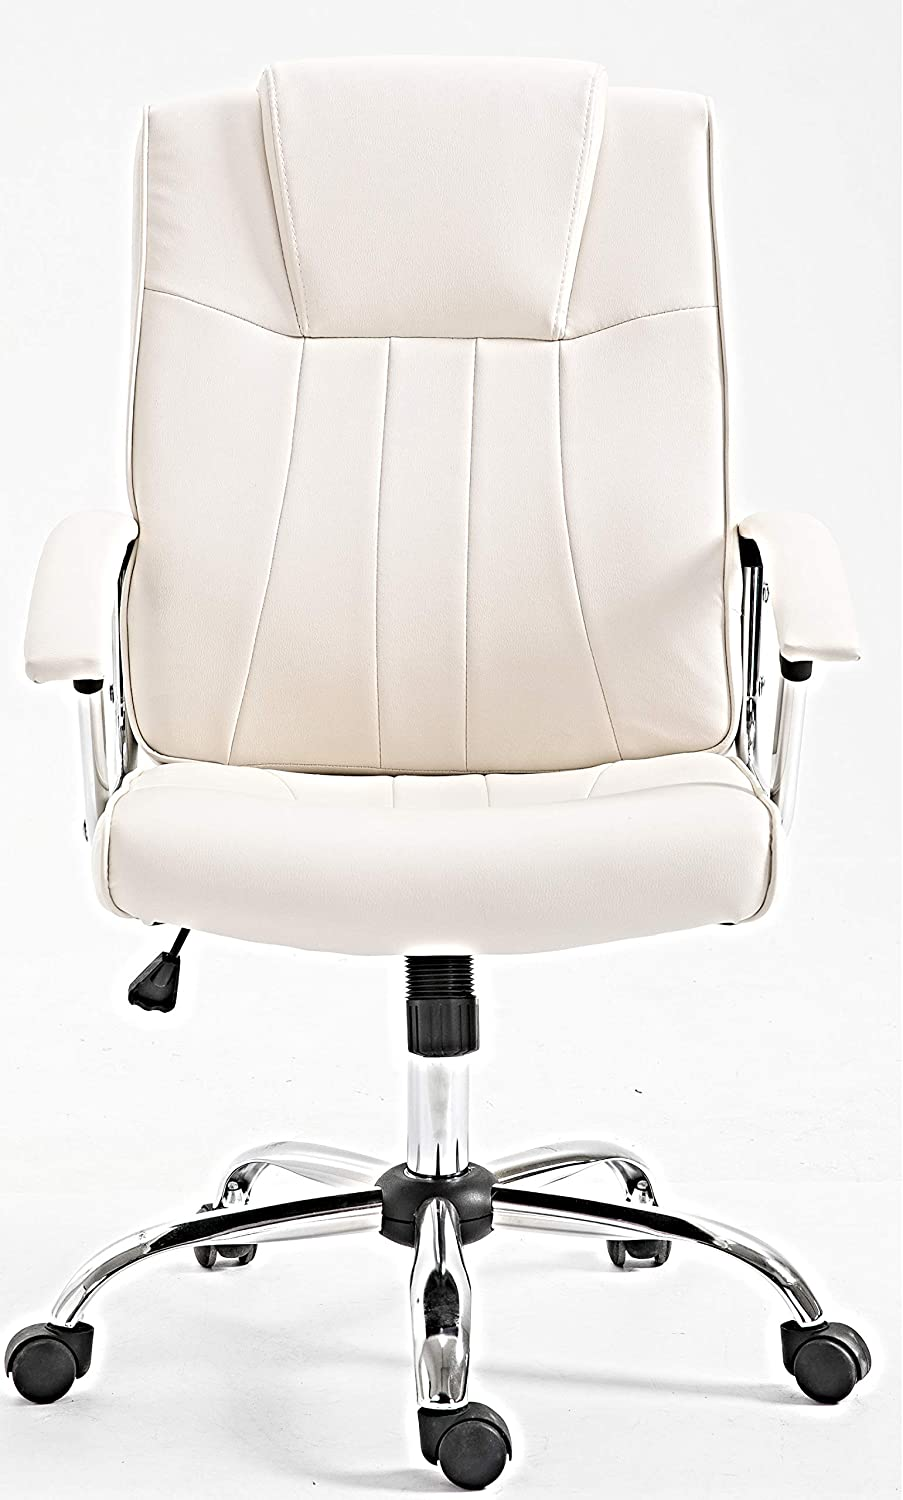 24//7 seatng Stylish Luxury Executive Leather Office Home Study Computer Desk Chair Tilt /& Lock Swivel and Height Adjustment.